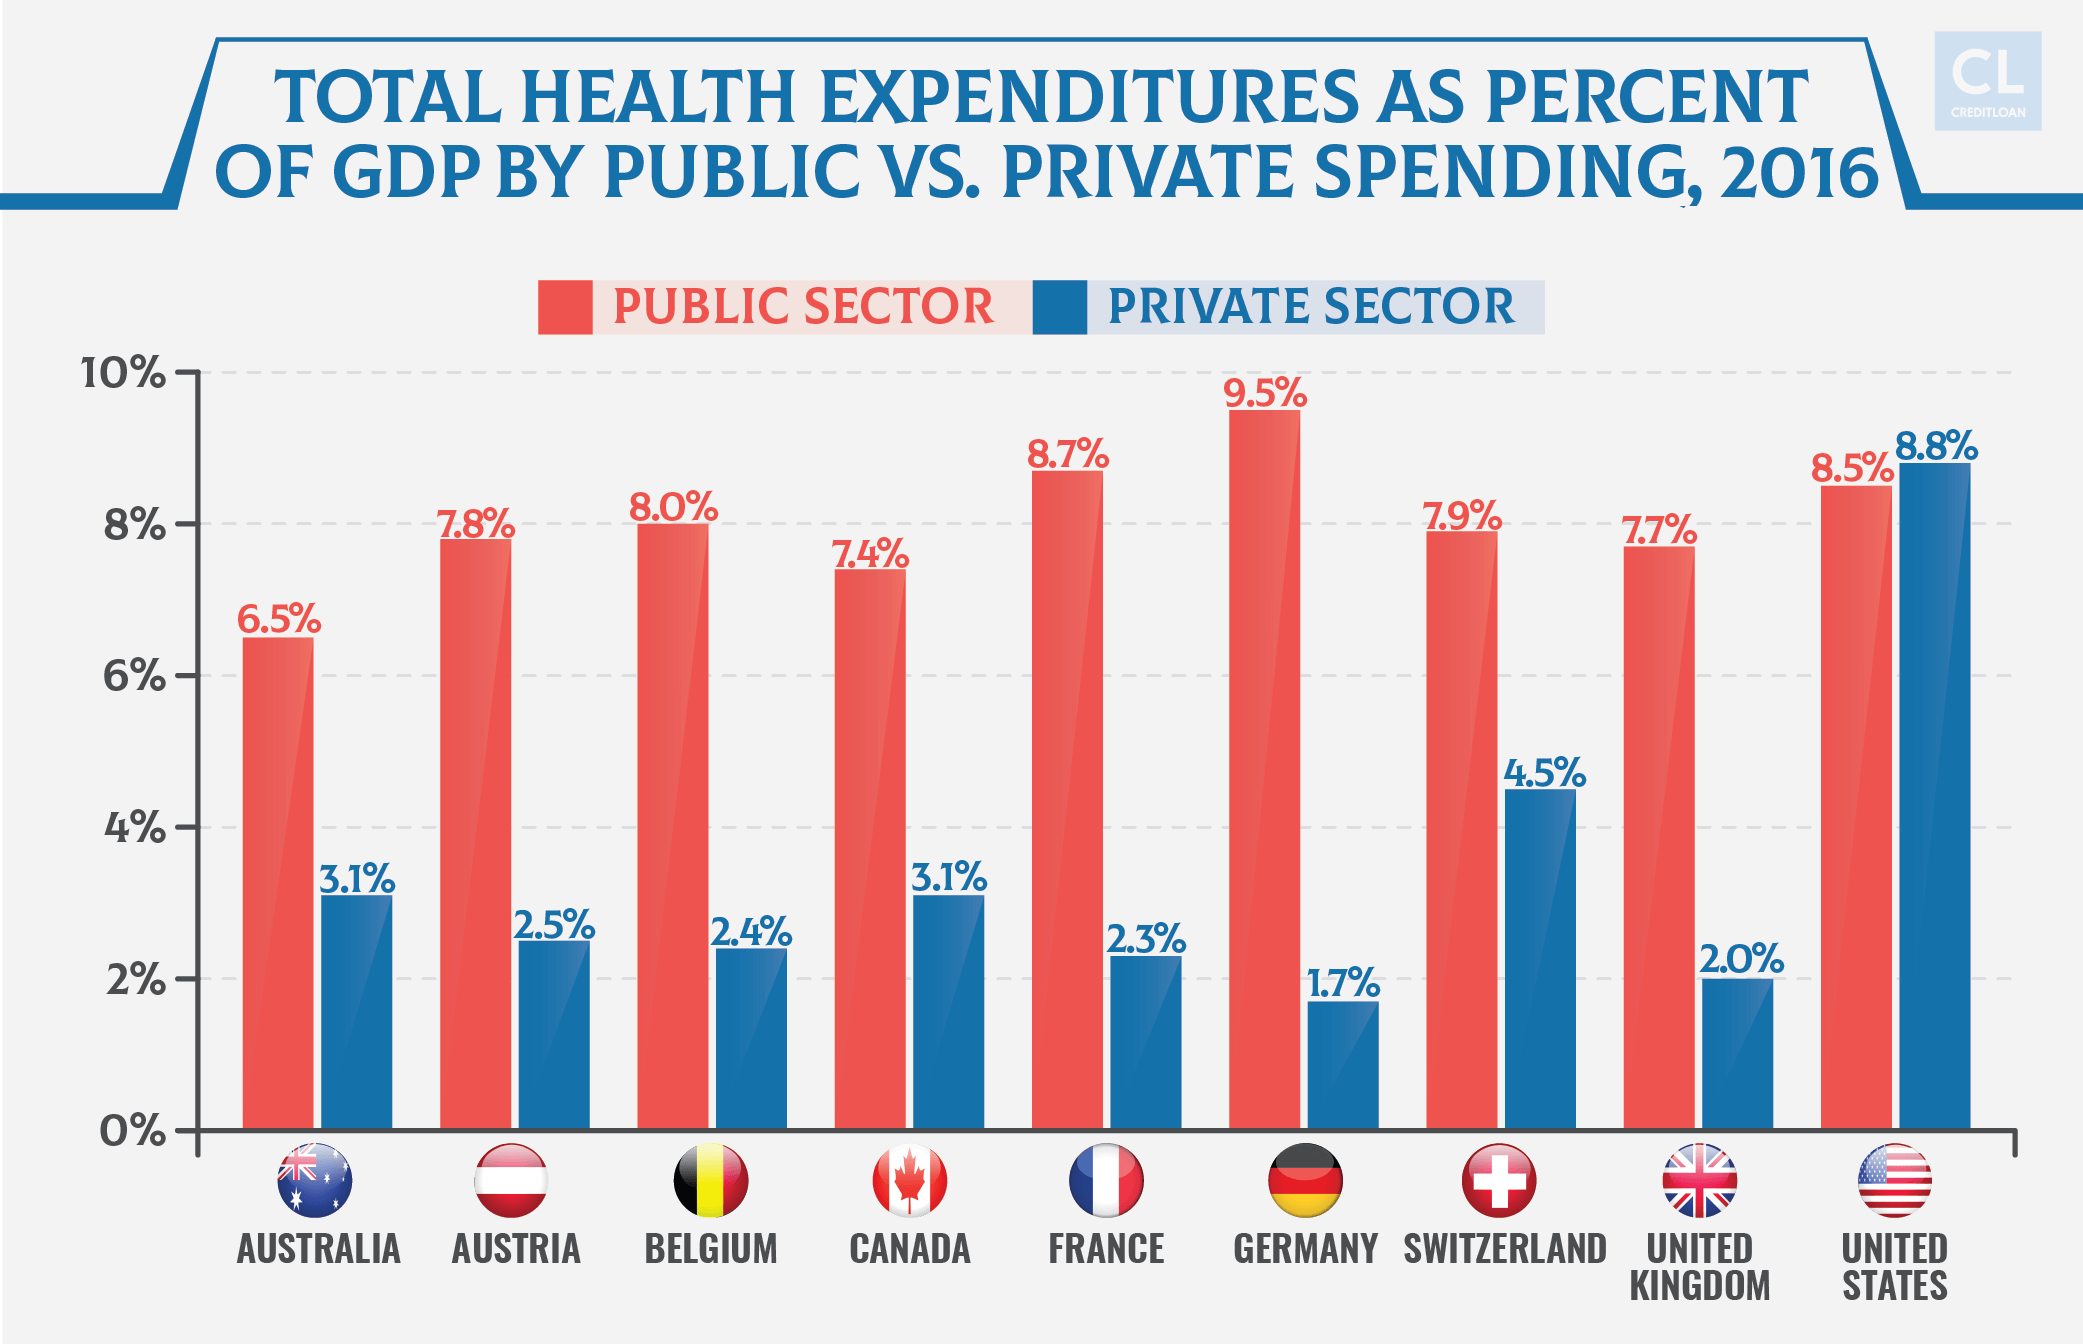 Total Health Expenditures As Percent Of Gdp By Public Vs. Private Spending 2016